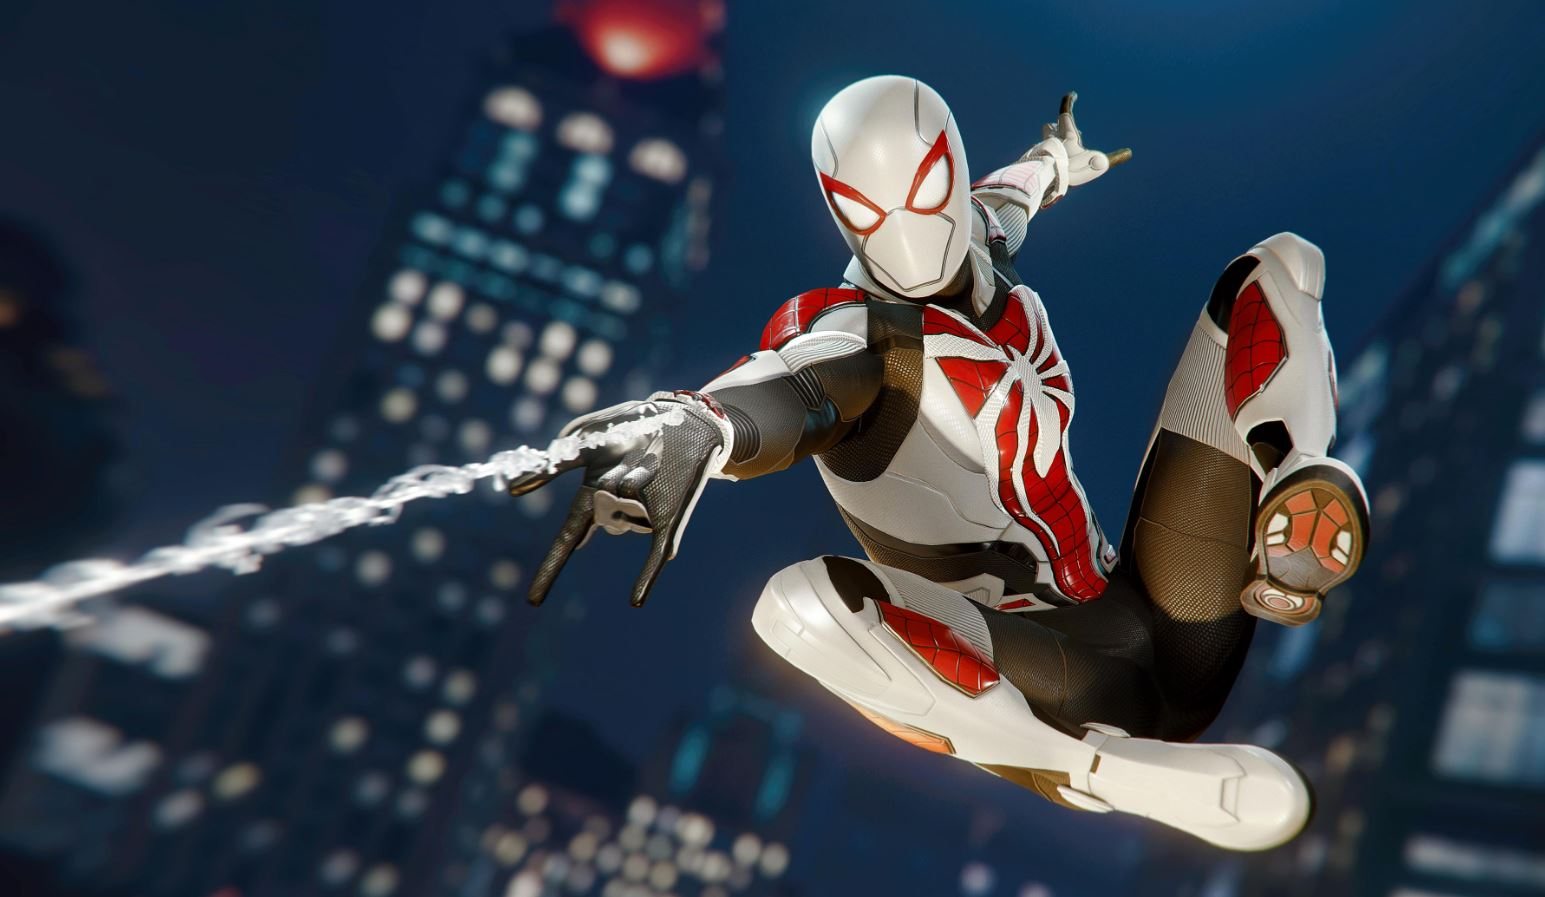 insomniac-unveils-two-new-marvels-spider-man-remastered-ps5-suits-1